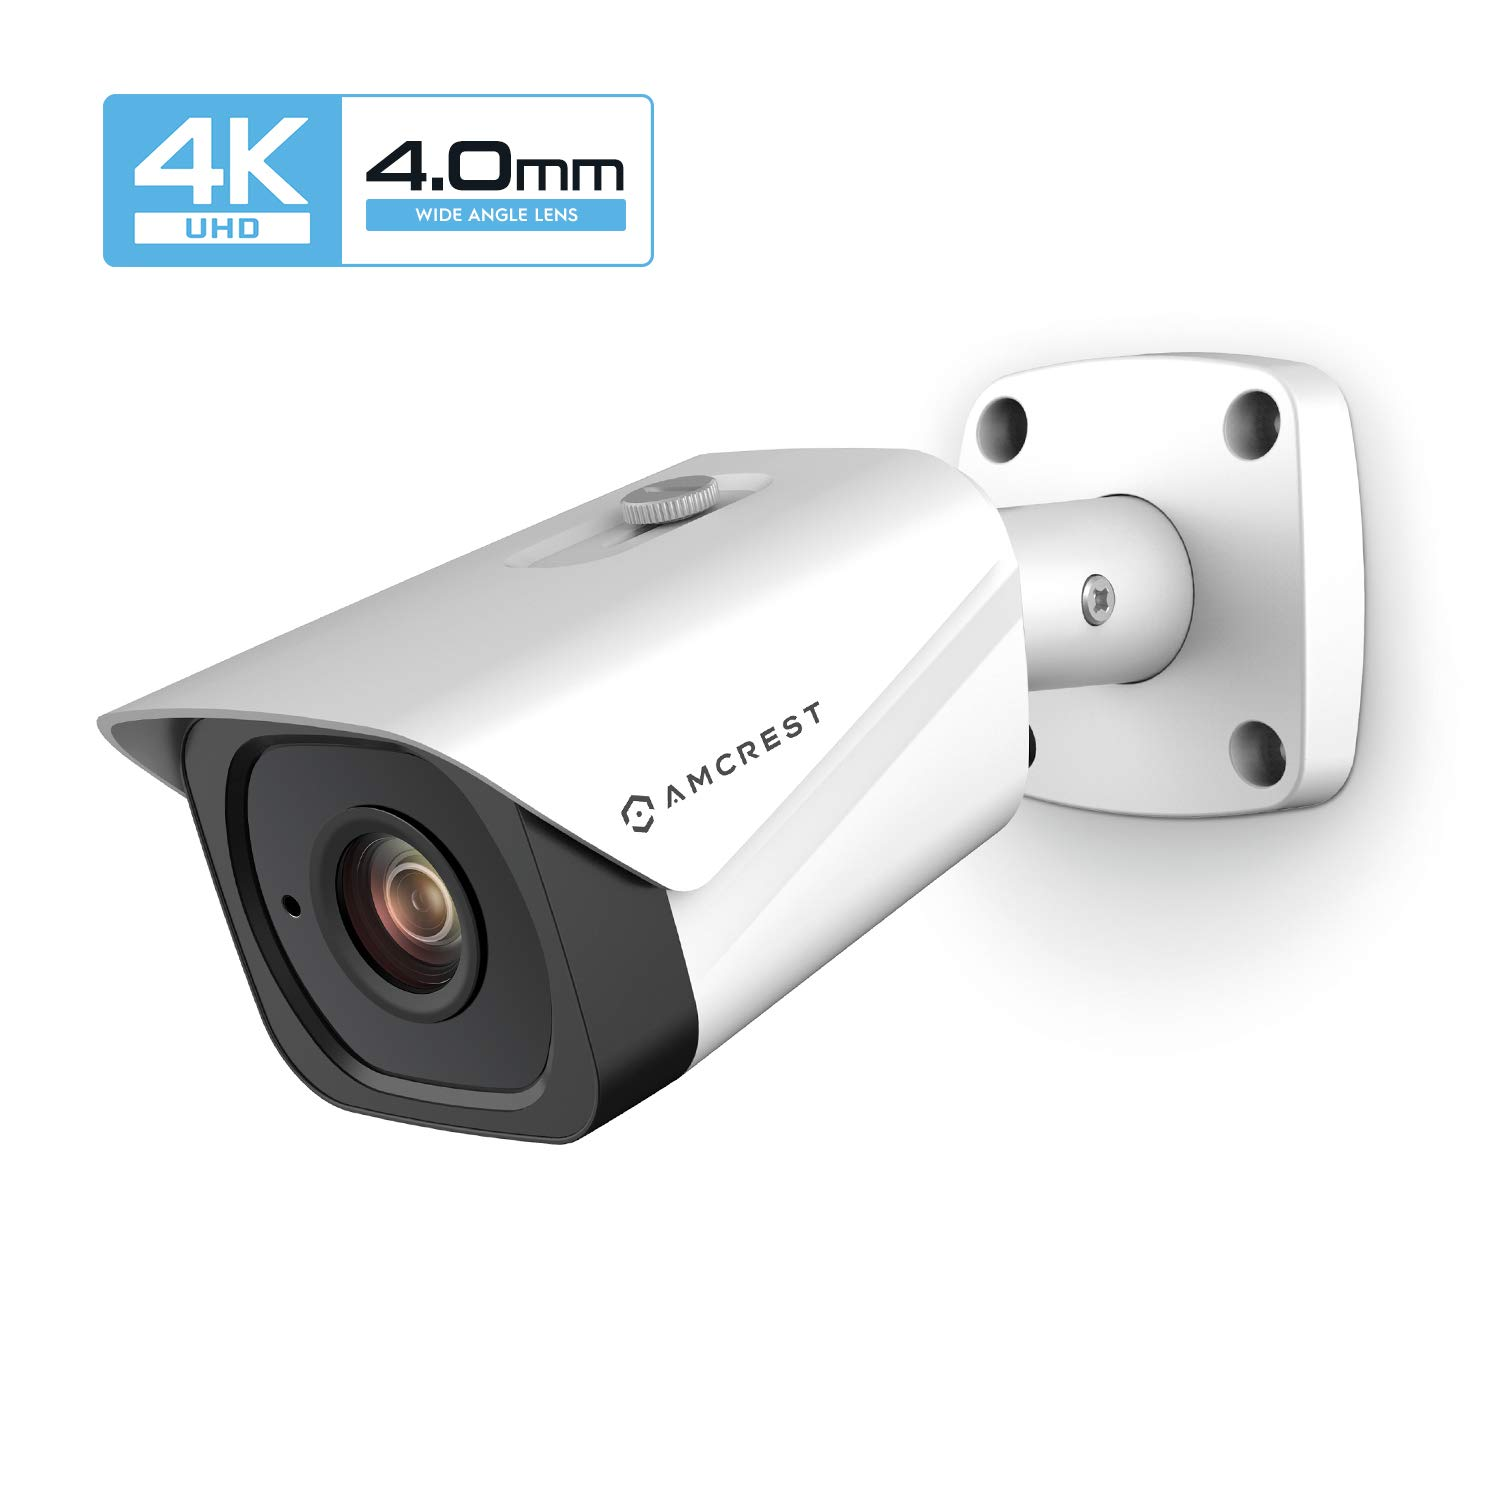 Amcrest UltraHD 4K (8MP) Outdoor Bullet POE IP Camera, 3840x2160, 131ft NightVision, 4.0mm Narrower Angle Lens, IP67 Weatherproof, Wide 88° Viewing Angle, MicroSD Recording, White (IP8M-2496EW-40MM) by Amcrest